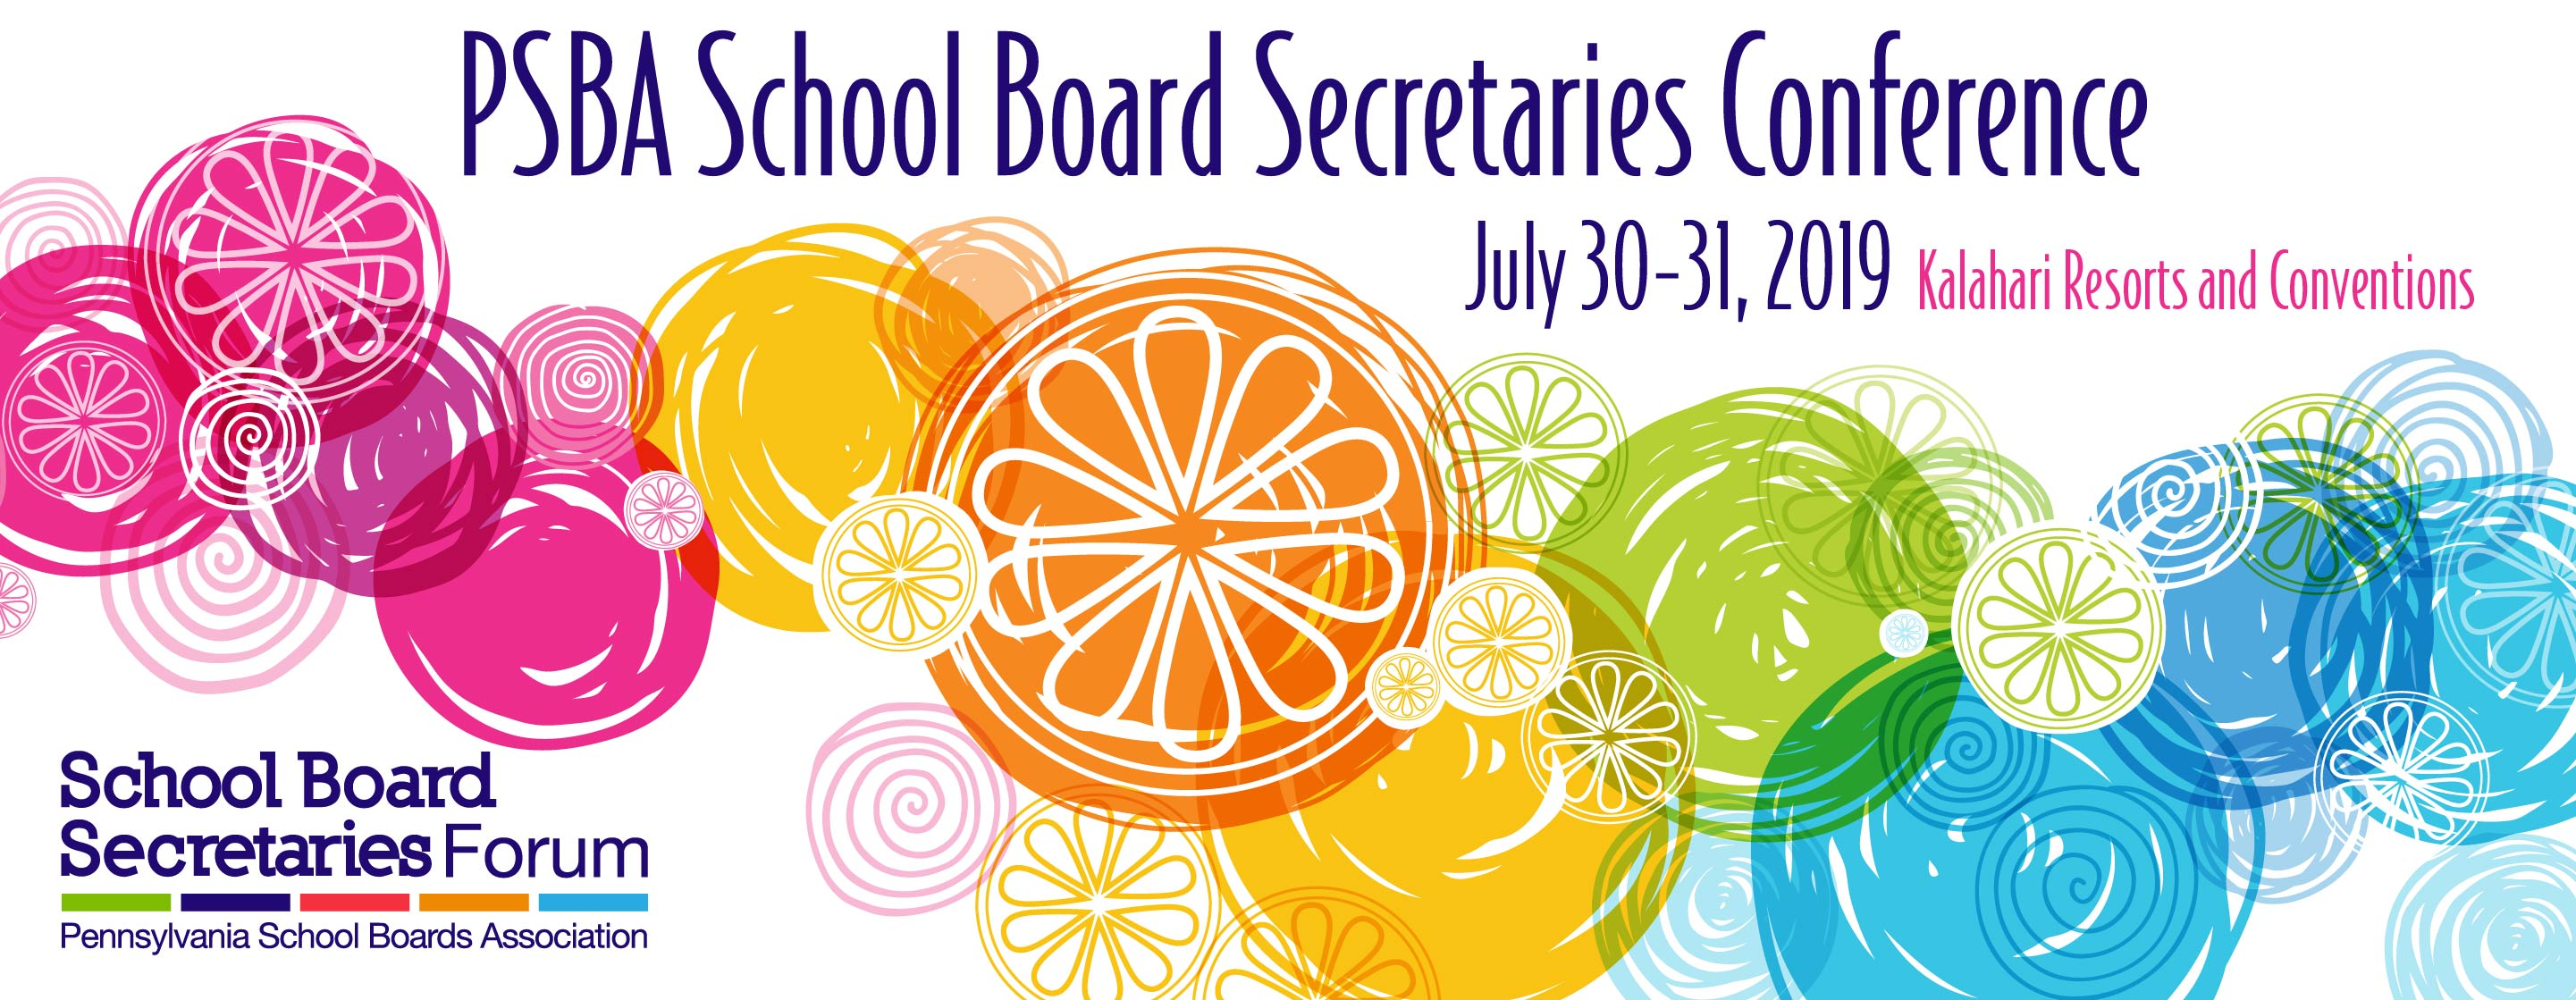 School Board Secretaries Conference